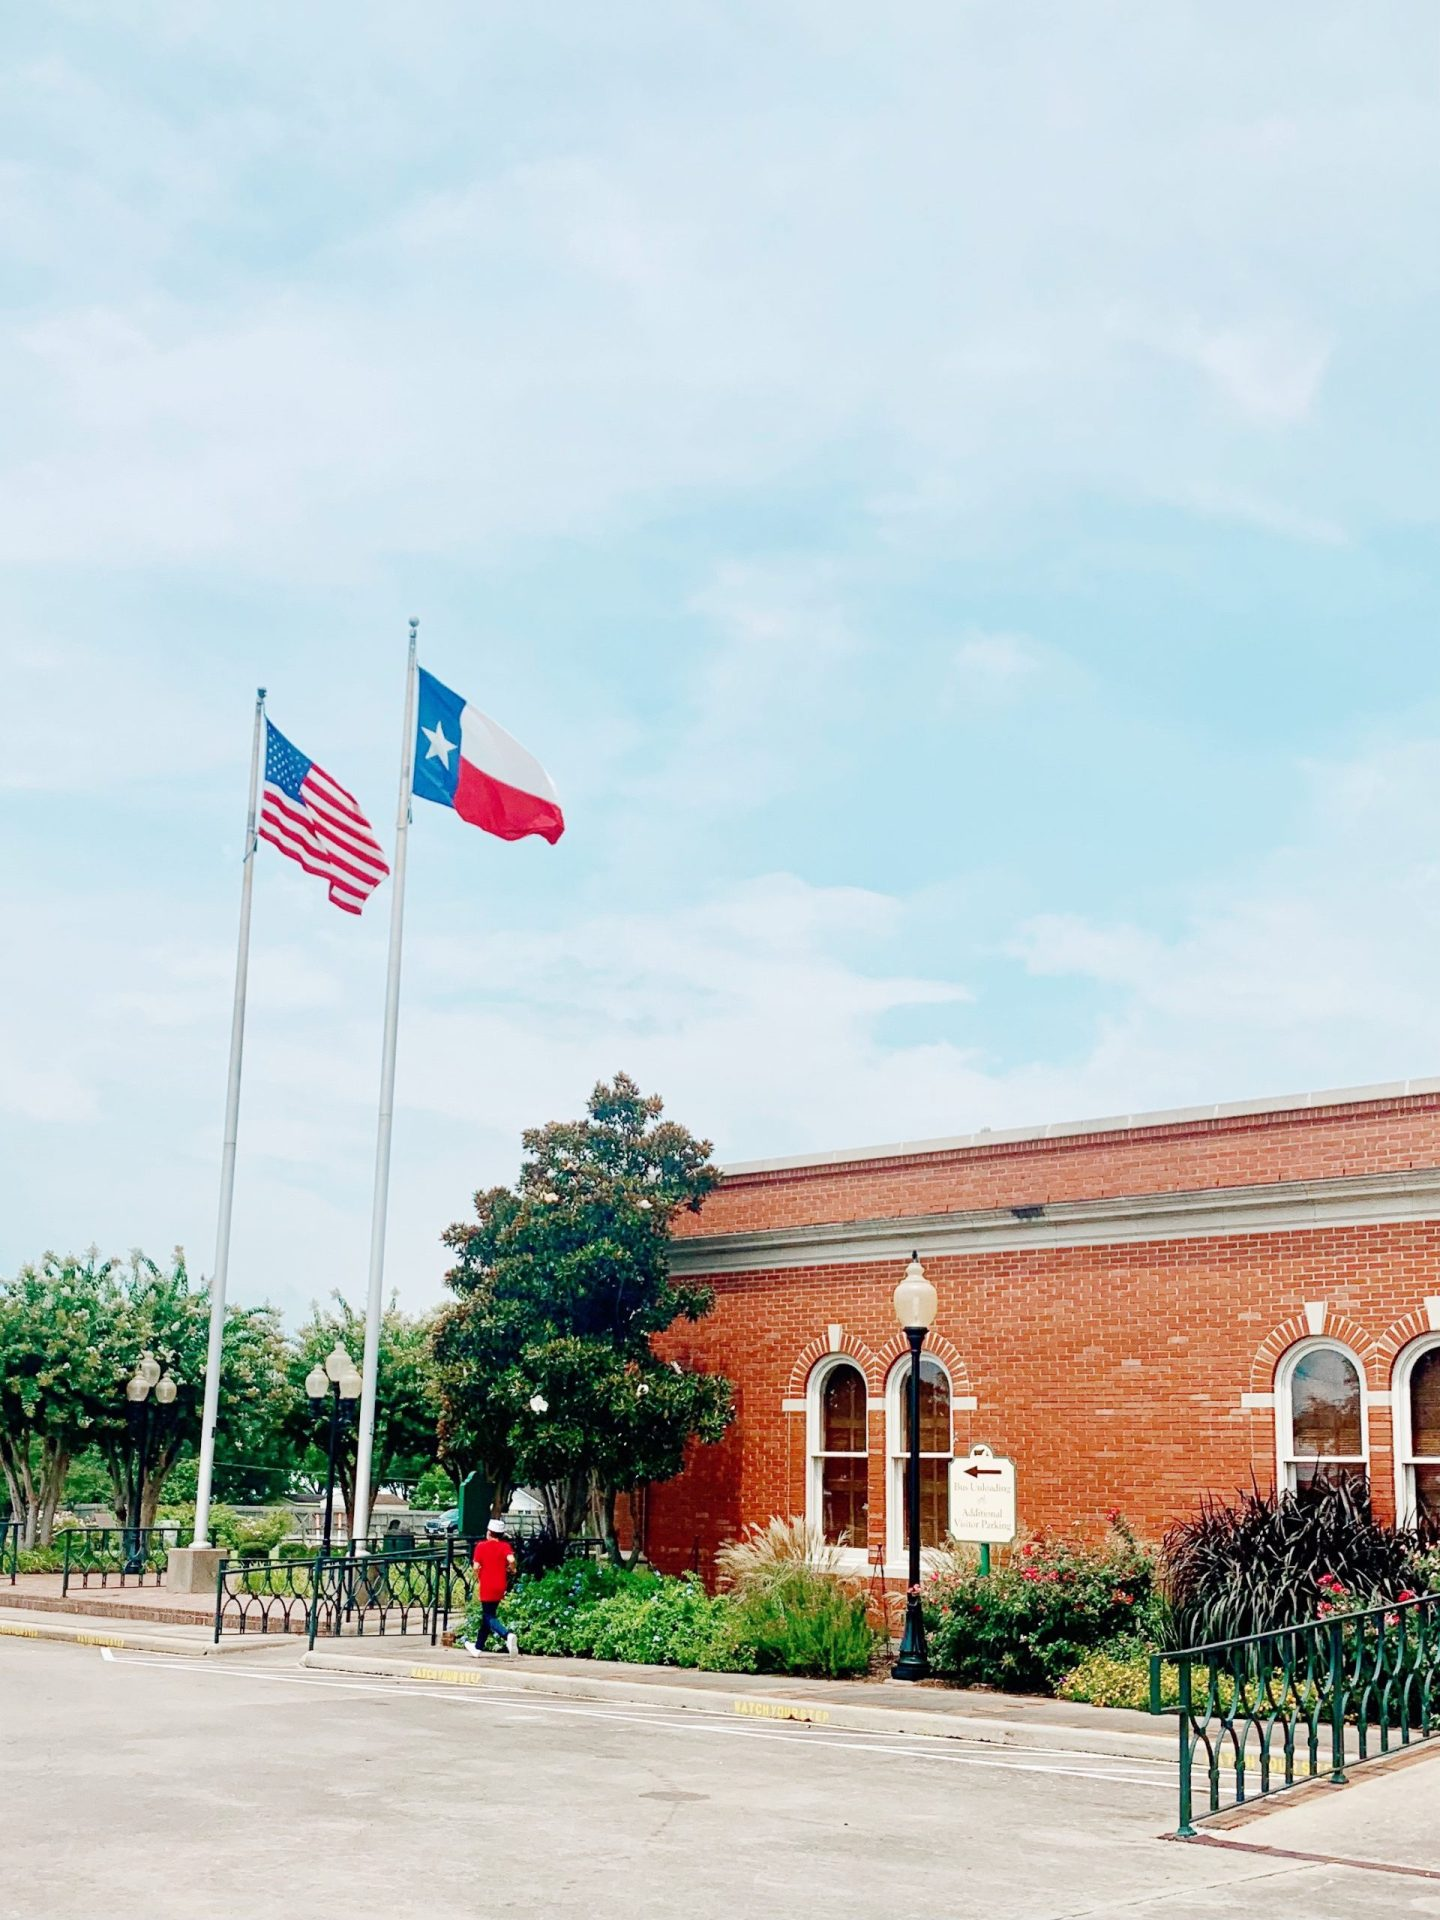 The Visitor's Center at the Blue Bell Creamery in Brenham, Texas.